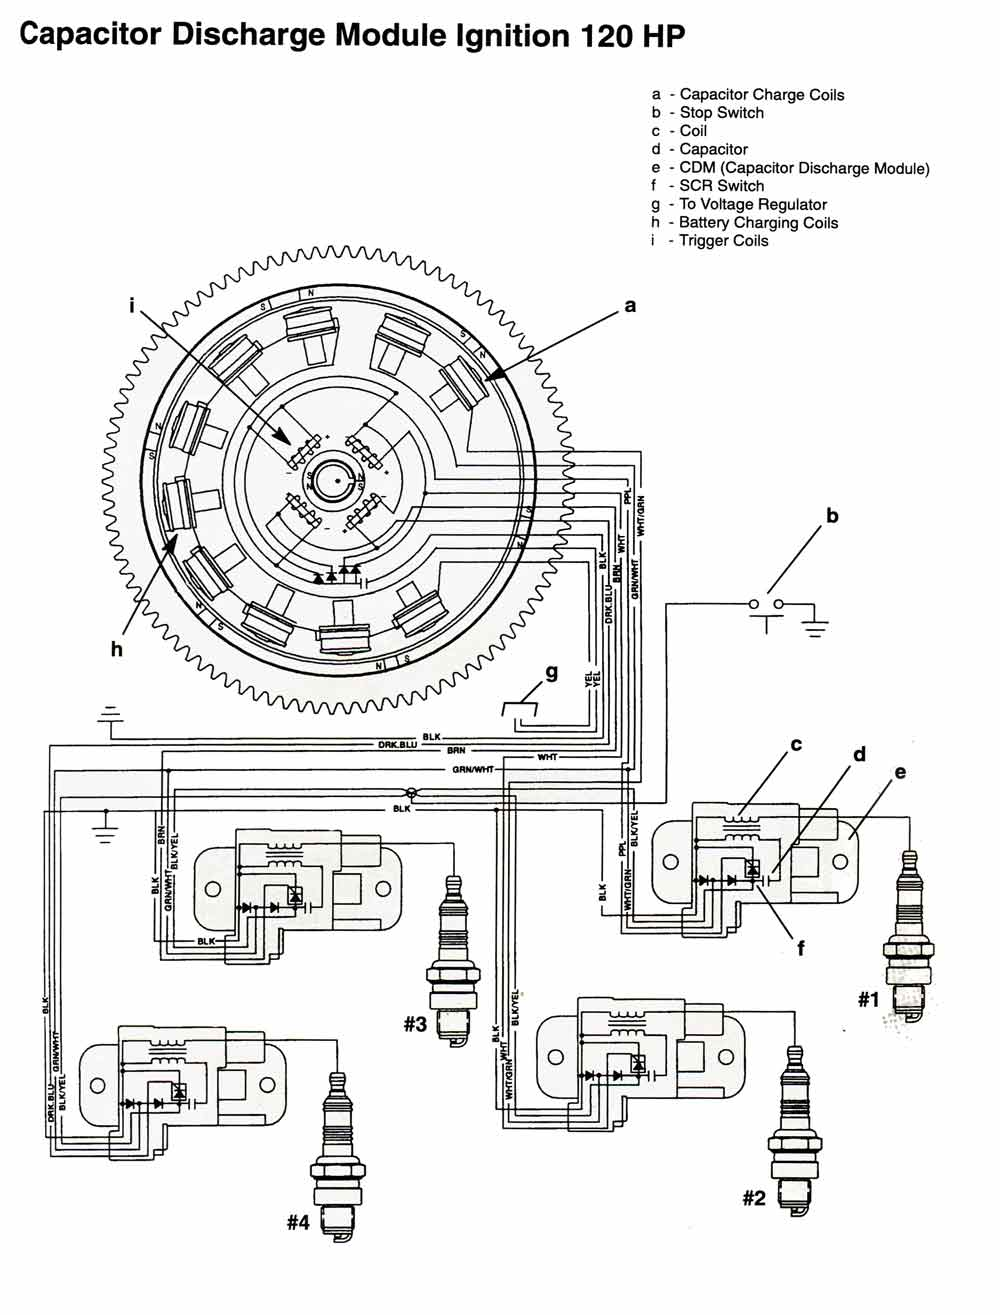 hight resolution of wrg 1907 g ignition system wiring diagramforce 120 hp 1996 up models ignition system chrysler